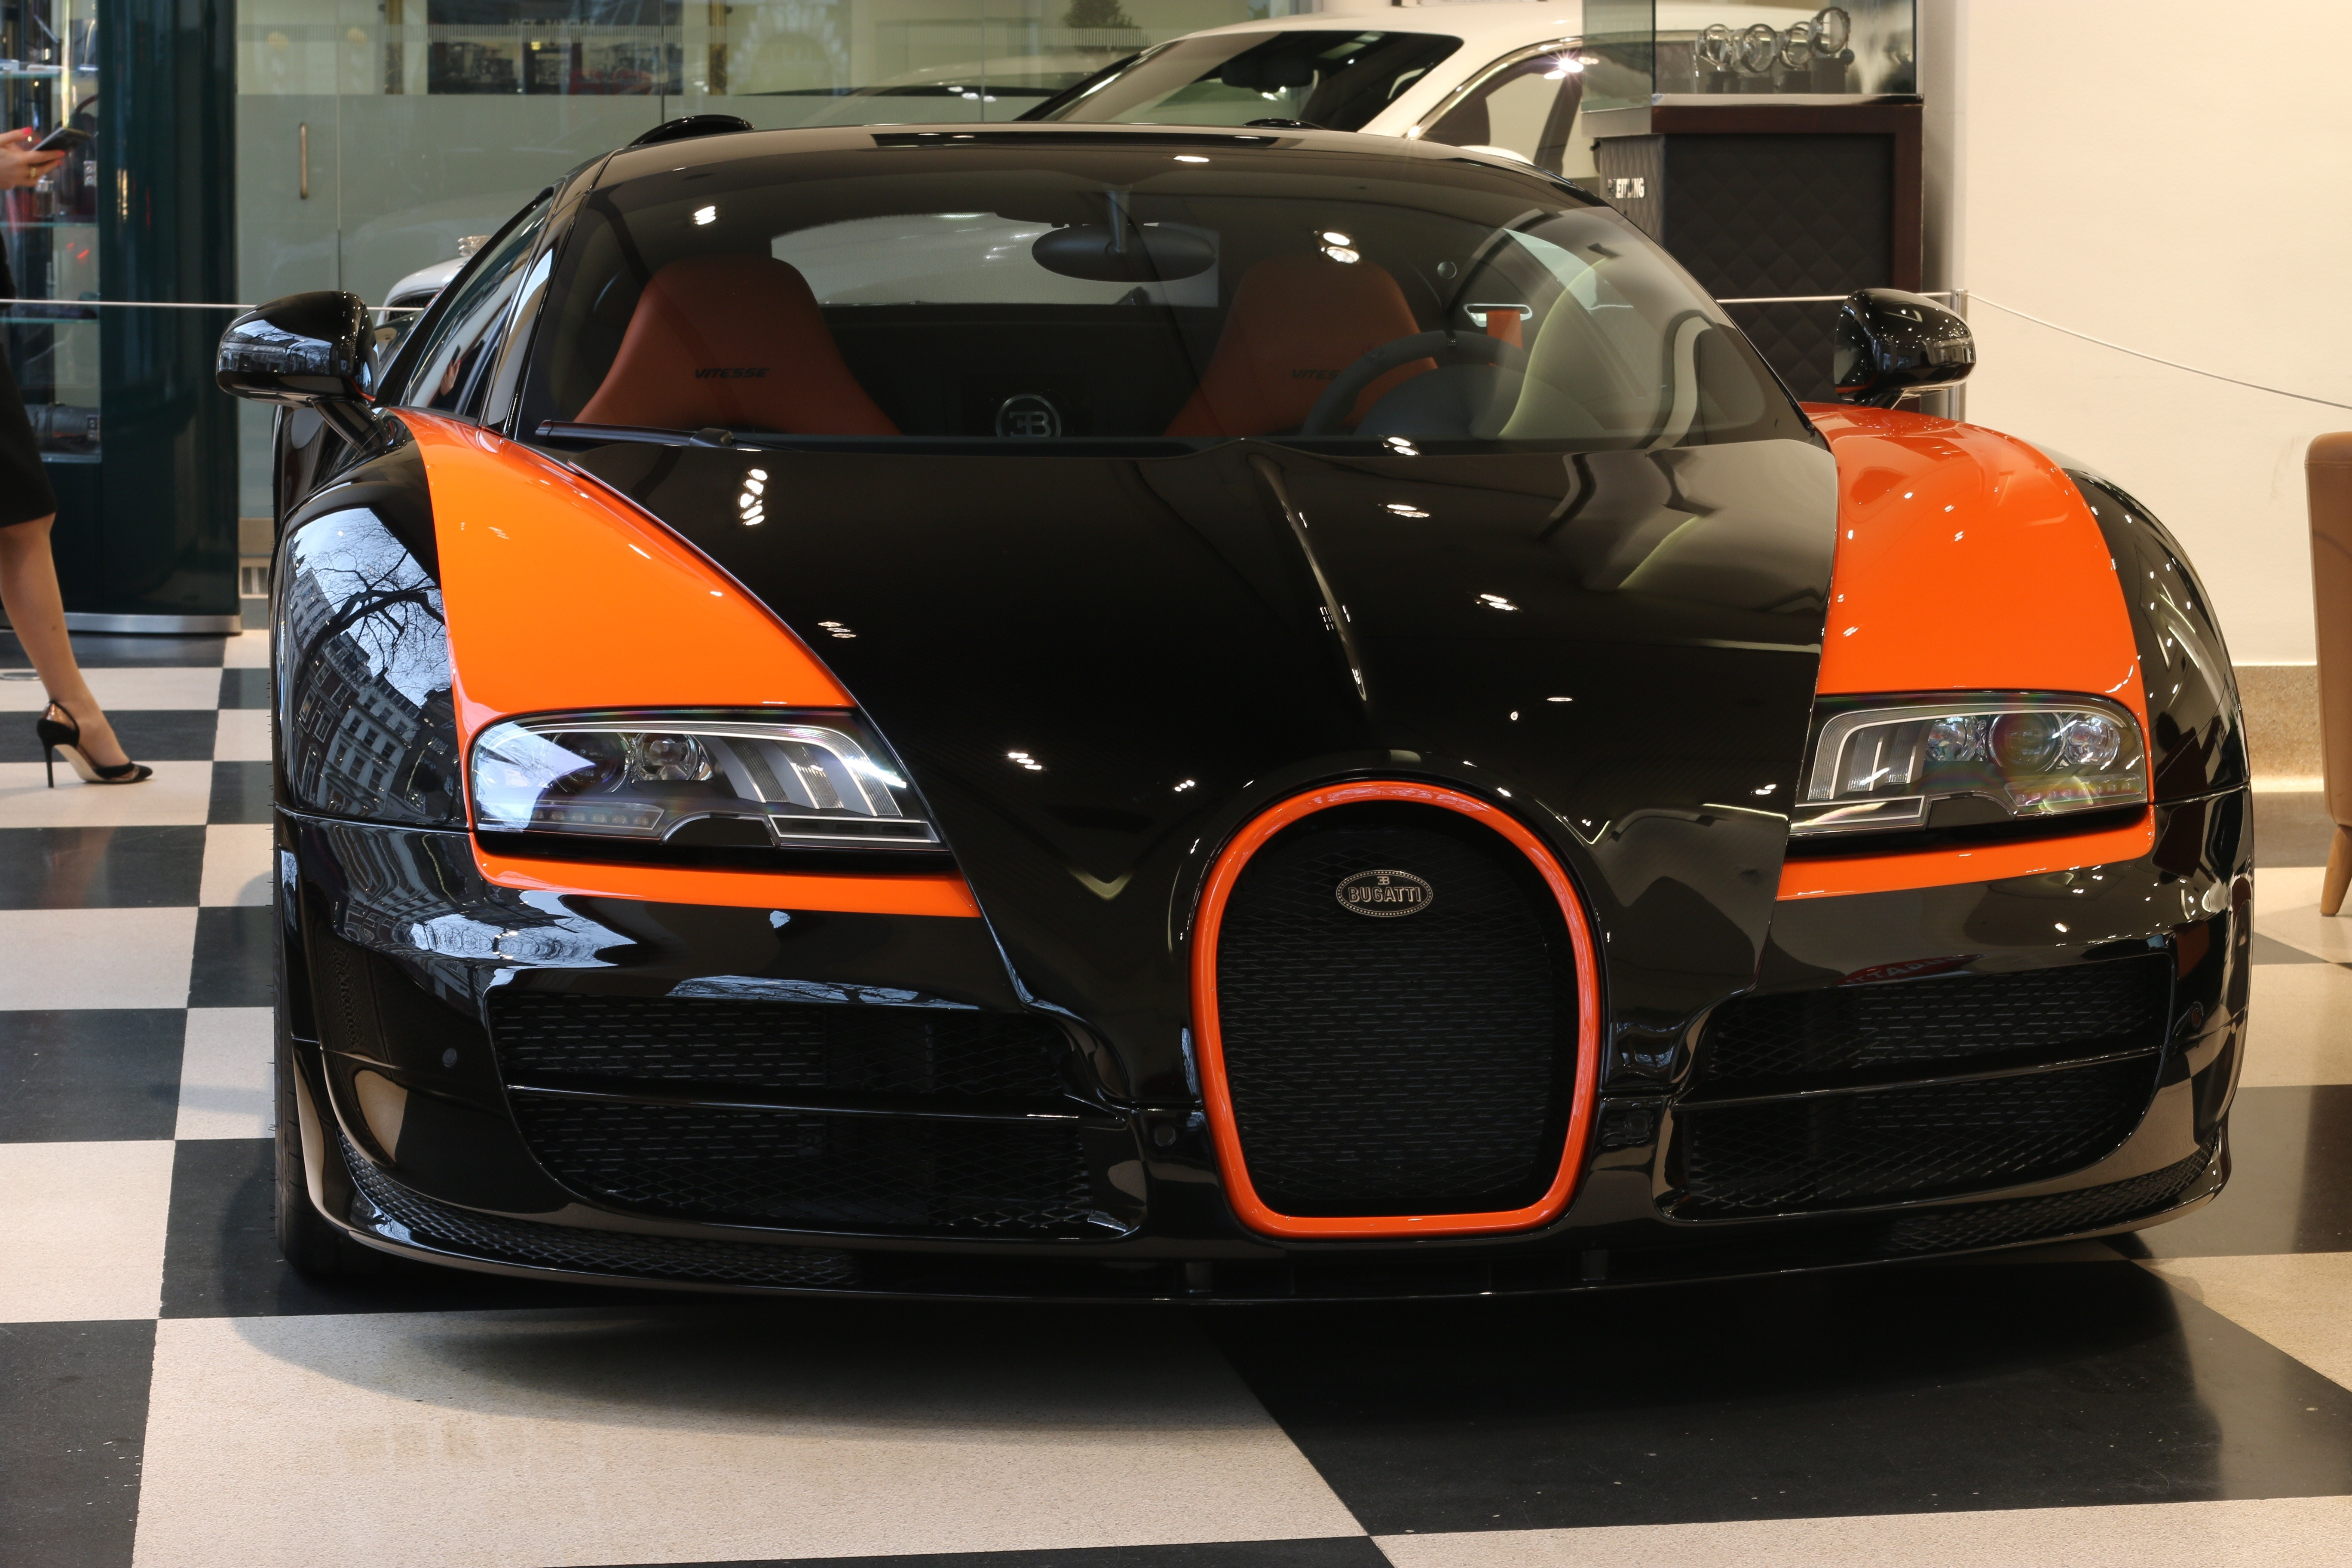 a-bugatti-veyron-grand-sport-vitesse-world-record-edition-is-now-for-sale_8 Terrific Bugatti Veyron Grand Sport Vitesse Gold Cars Trend